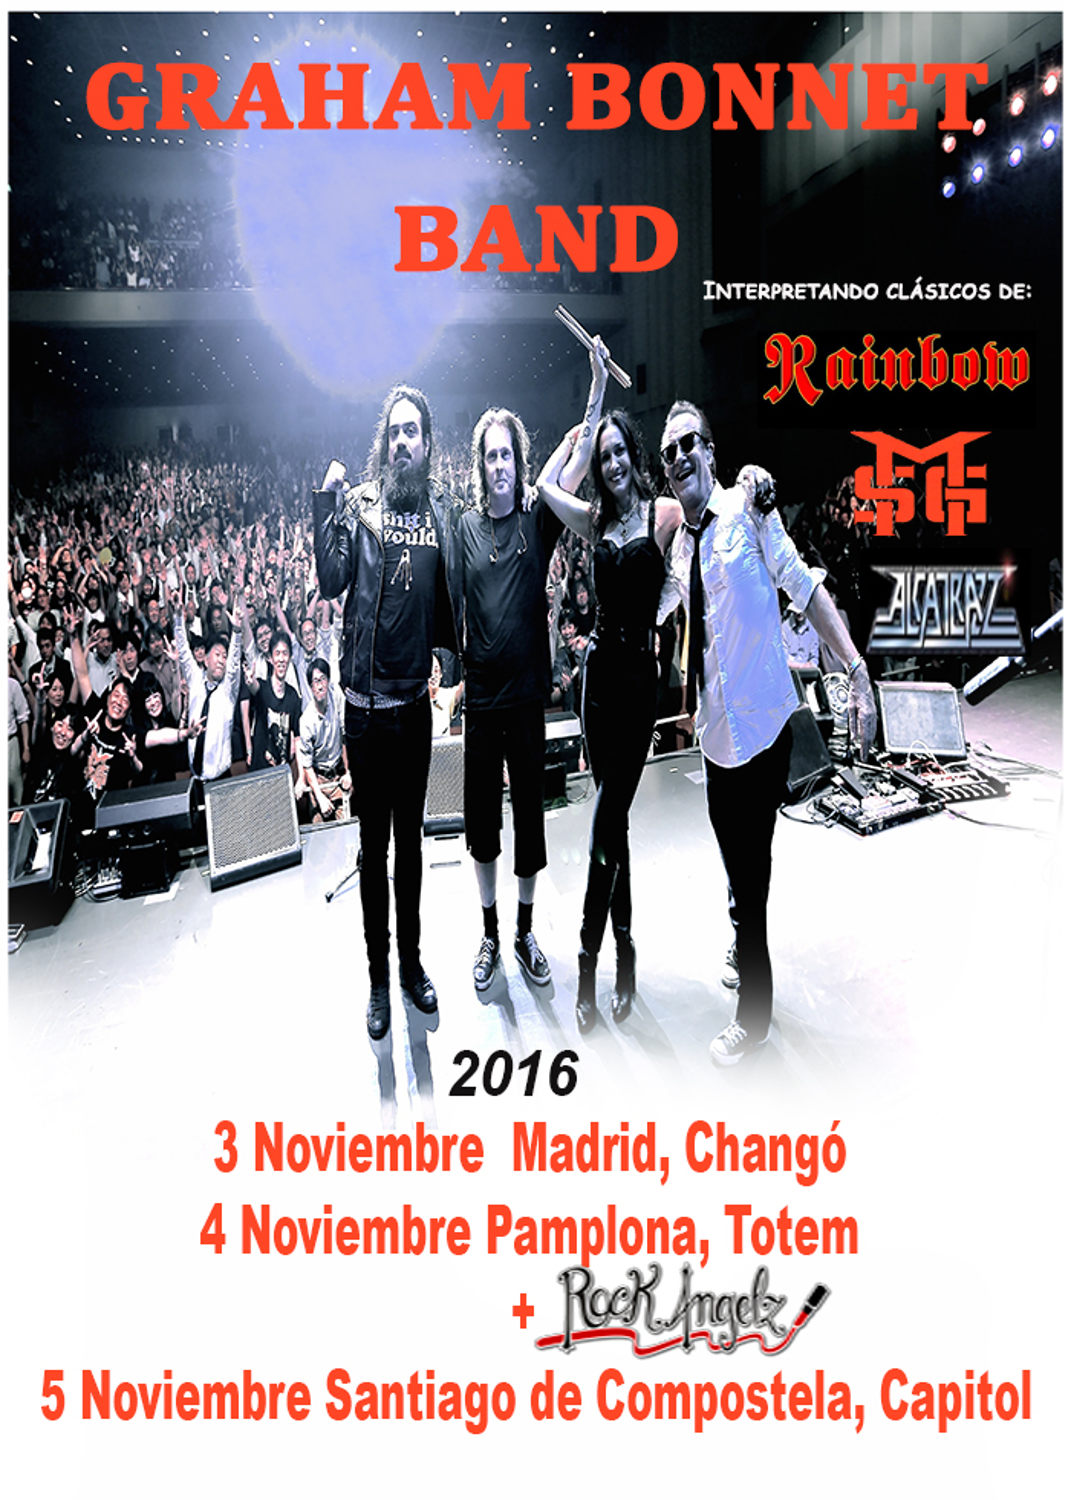 graham-bonnet-band 2016 cartel web letra de palo